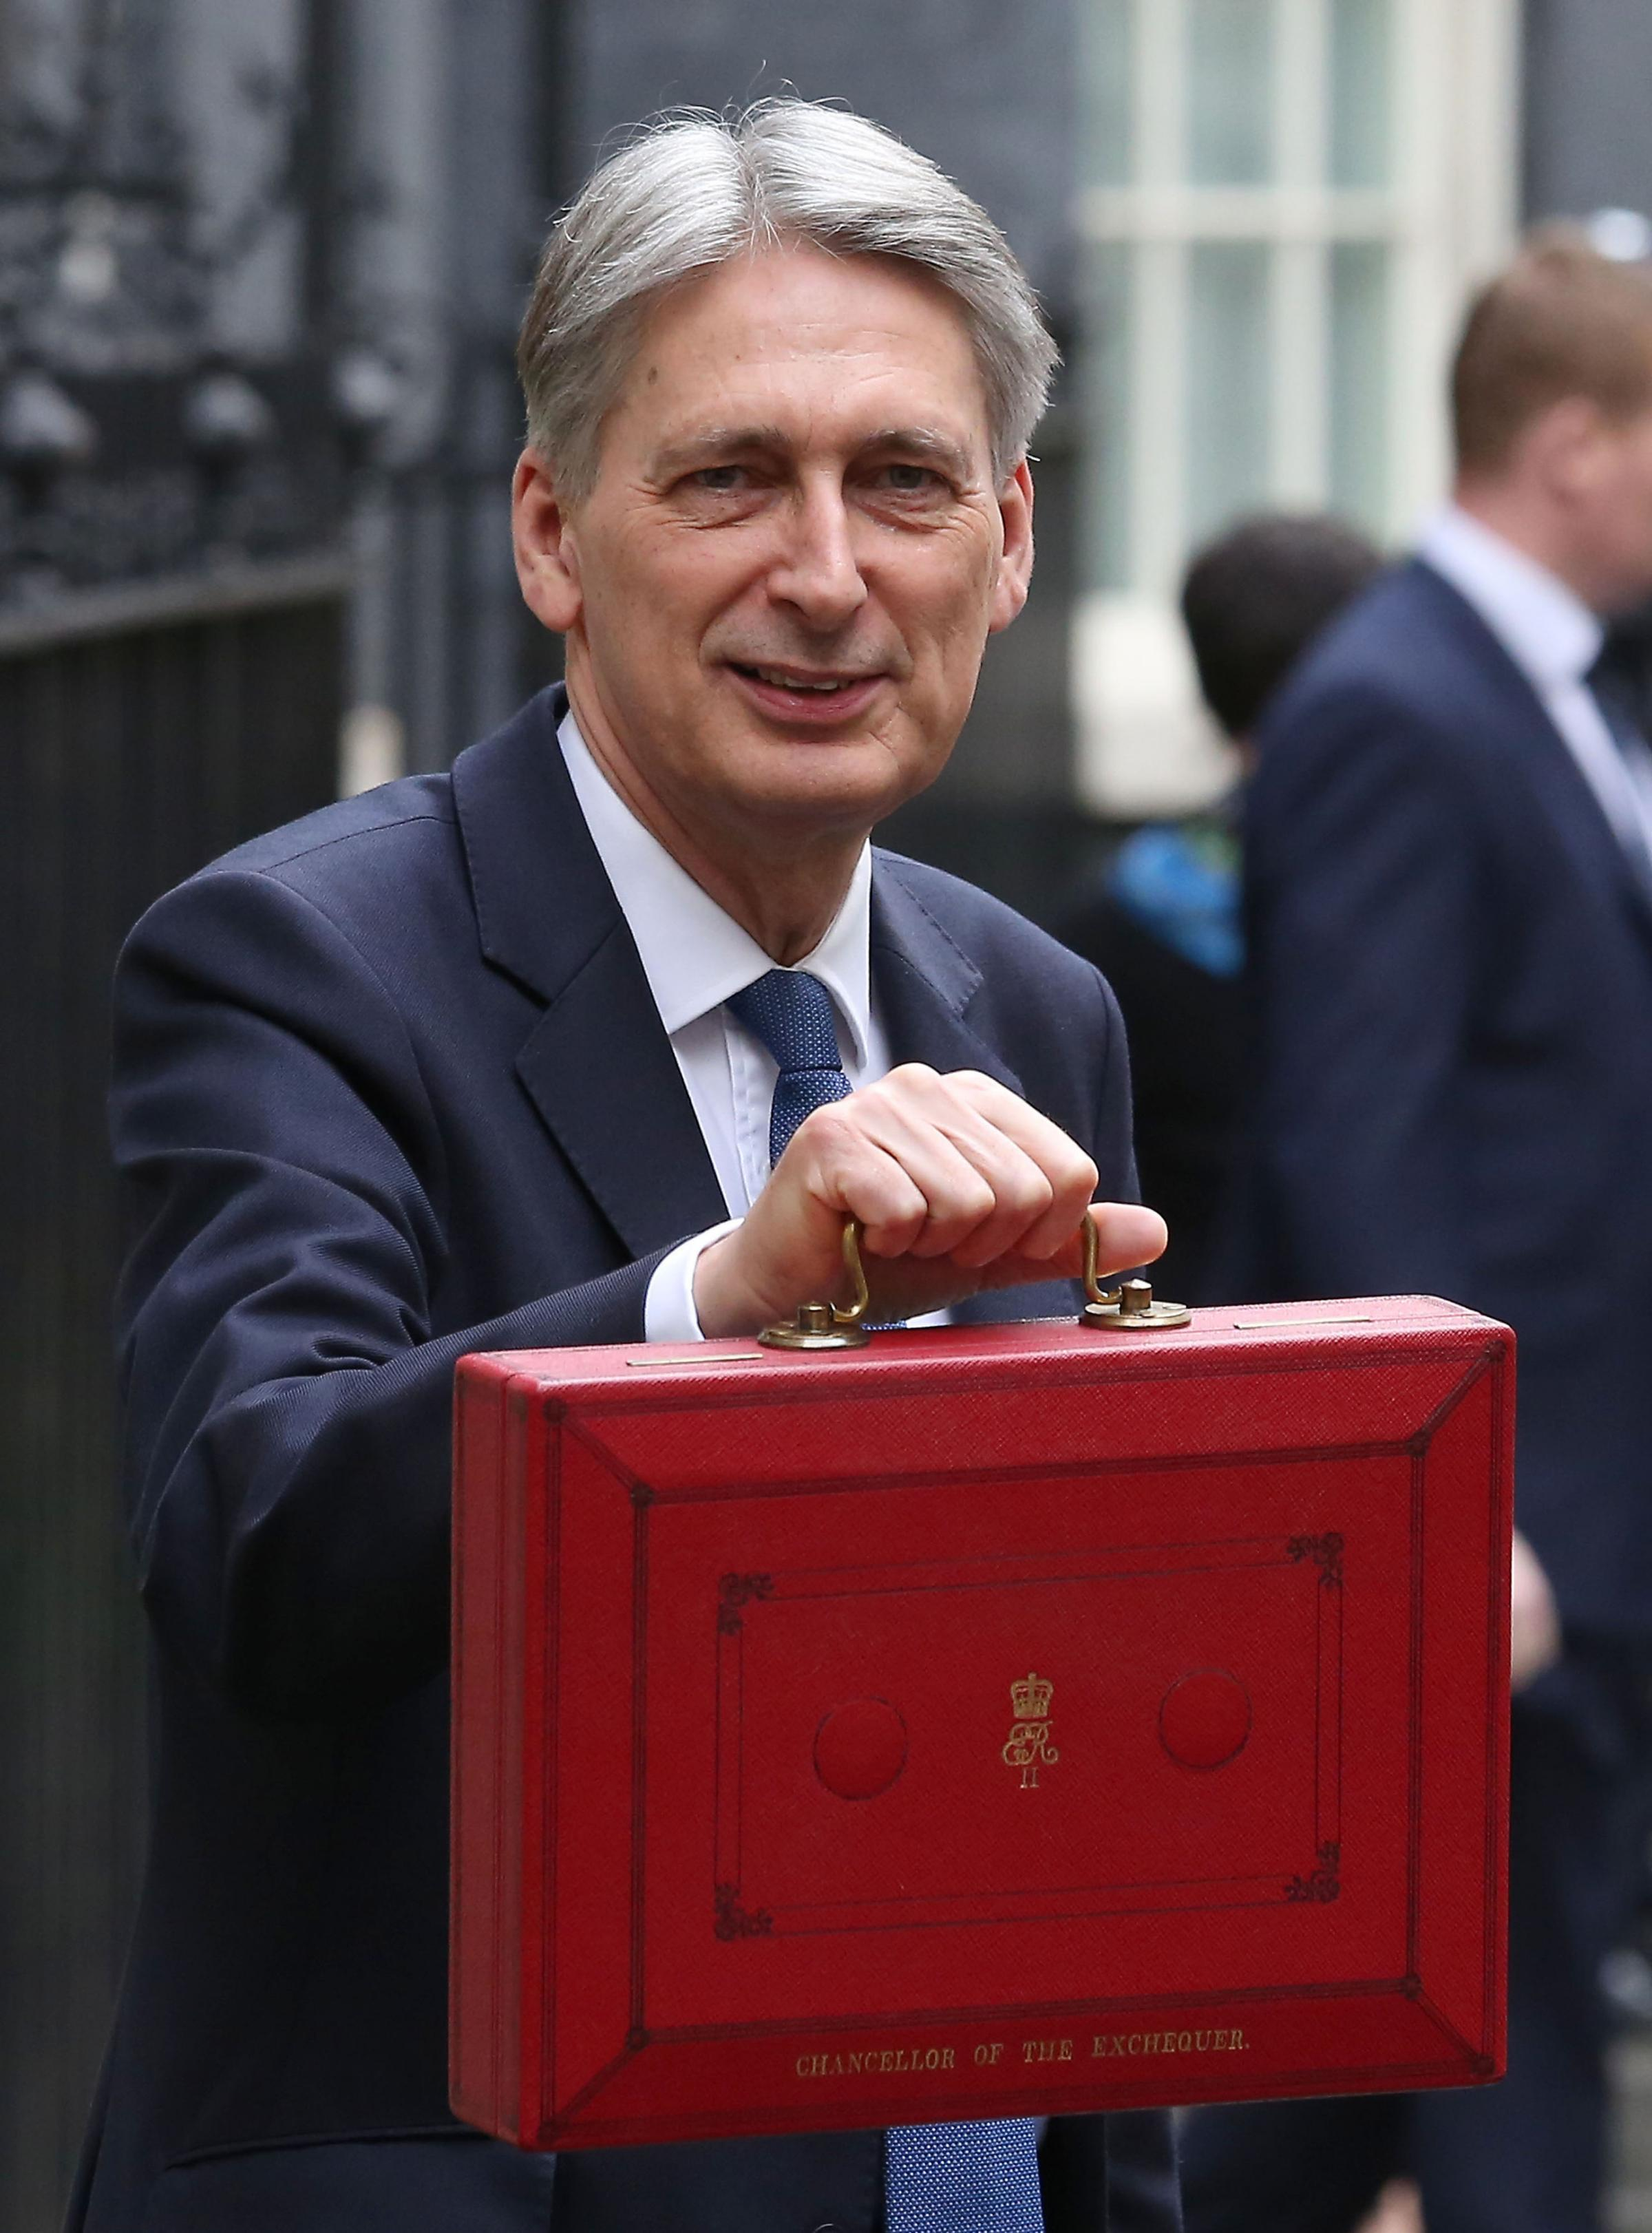 Chancellor Philip Hammond, who has been warned he must tackle the crises in housing and social care in his forthcoming budget.